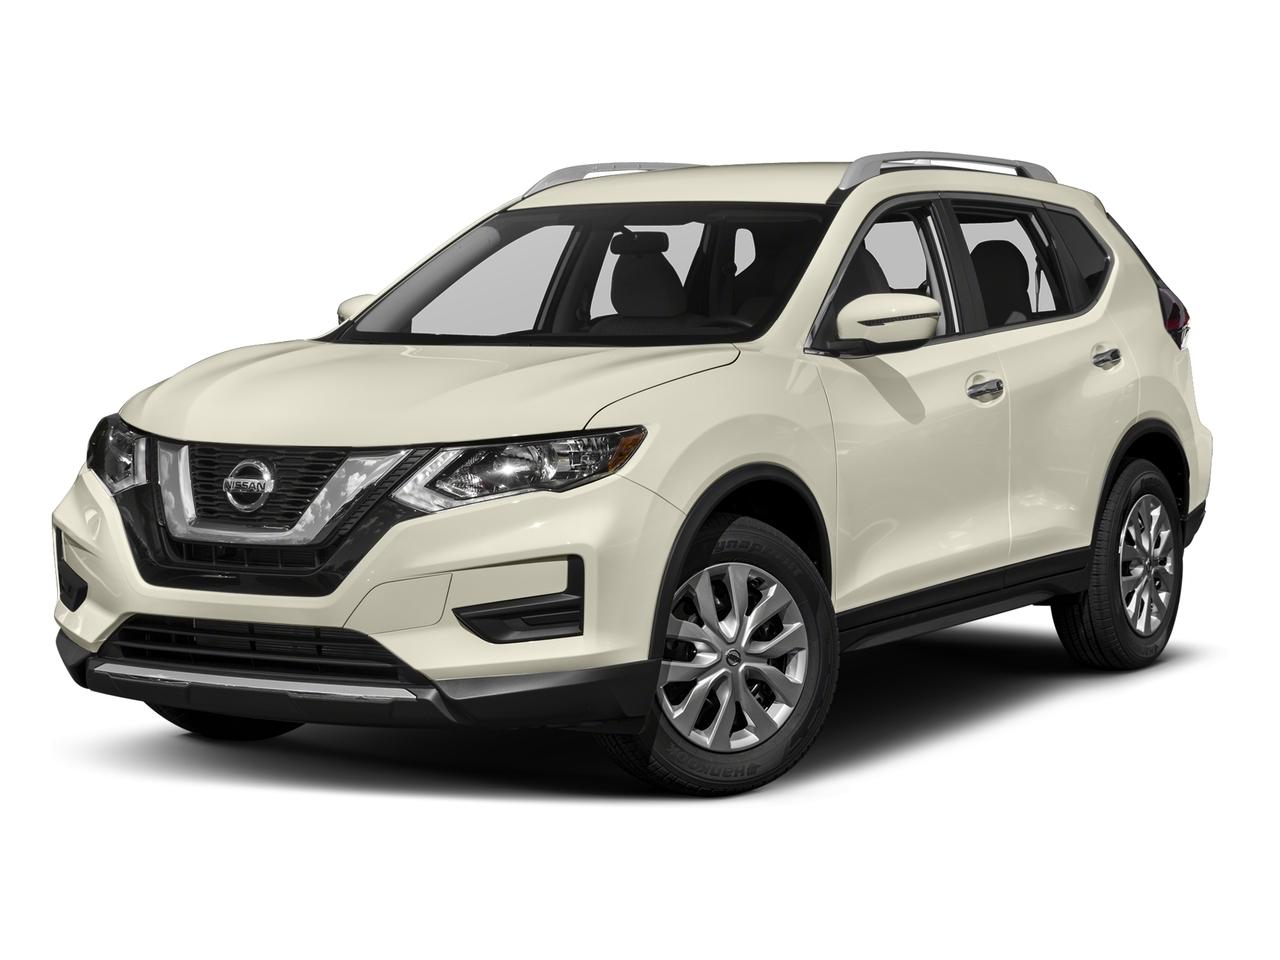 2017 Nissan Rogue Vehicle Photo in San Antonio, TX 78257